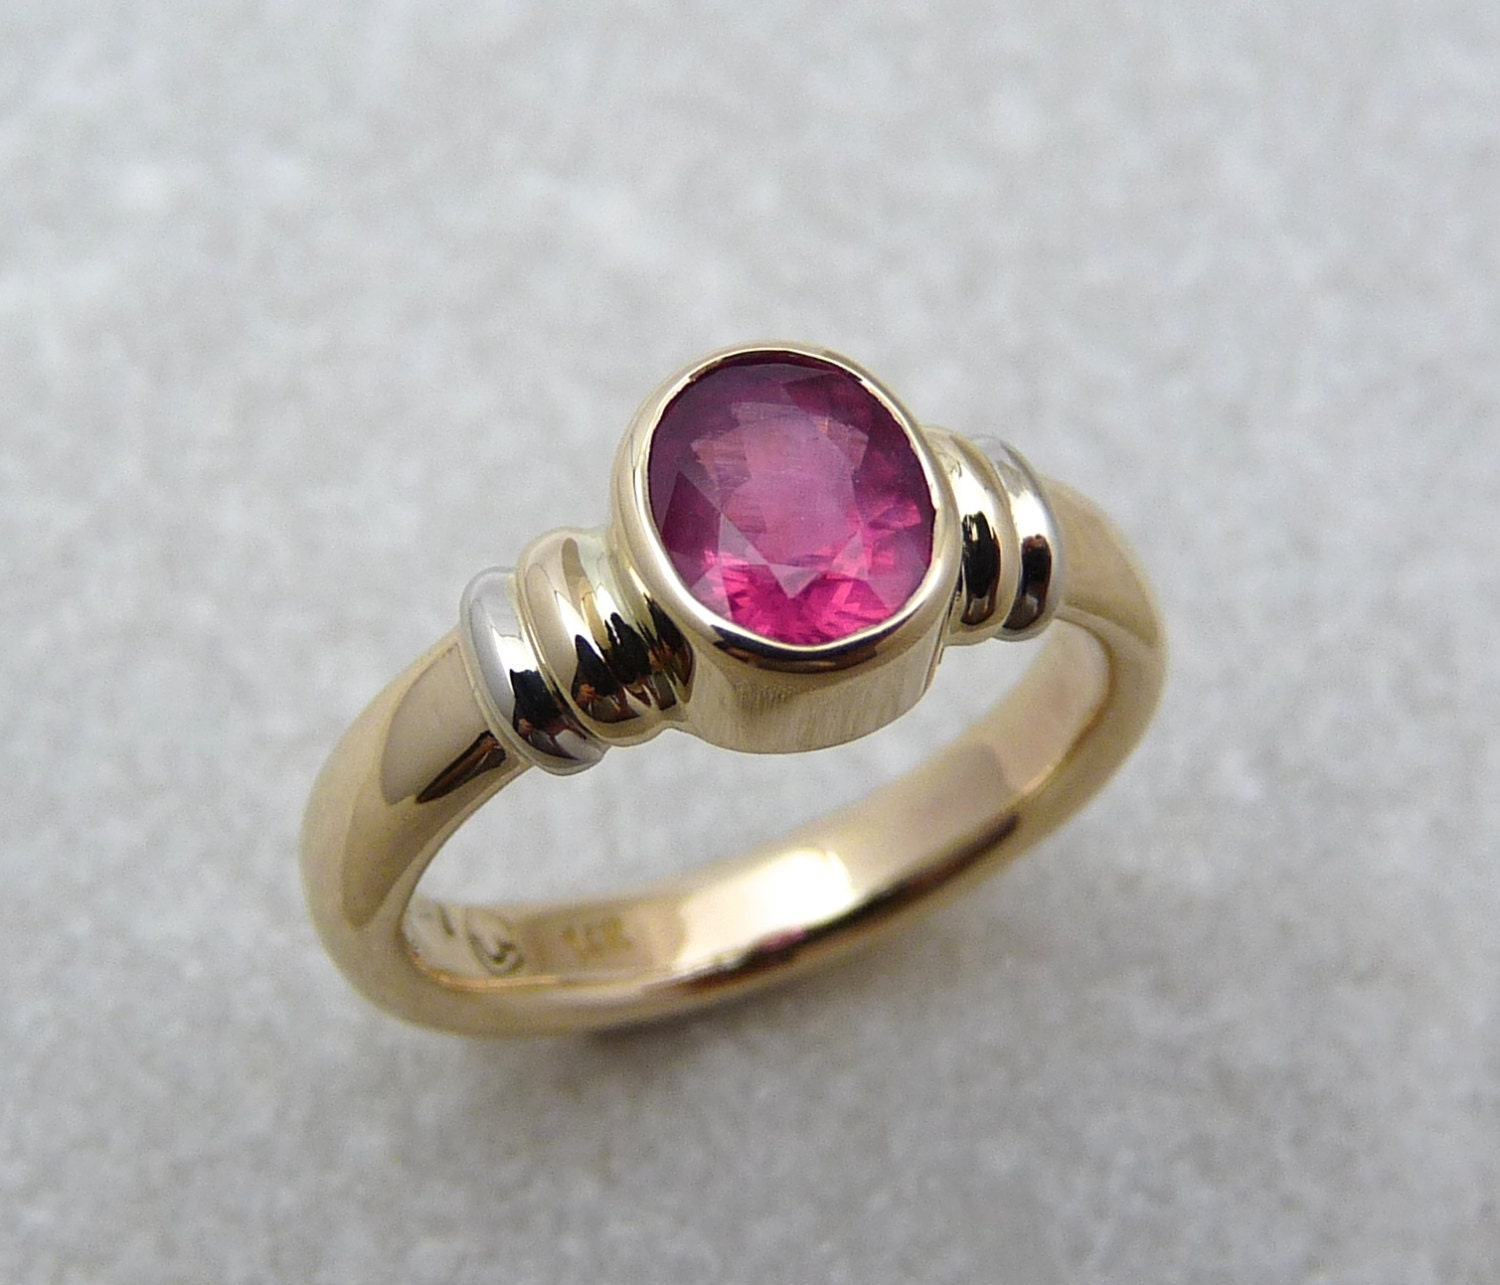 exquisite by seaside featuring on a and an pinterest coast pink diamond goldcasters romance best shank images stone tourmaline rings halo jewelry ring surrounded